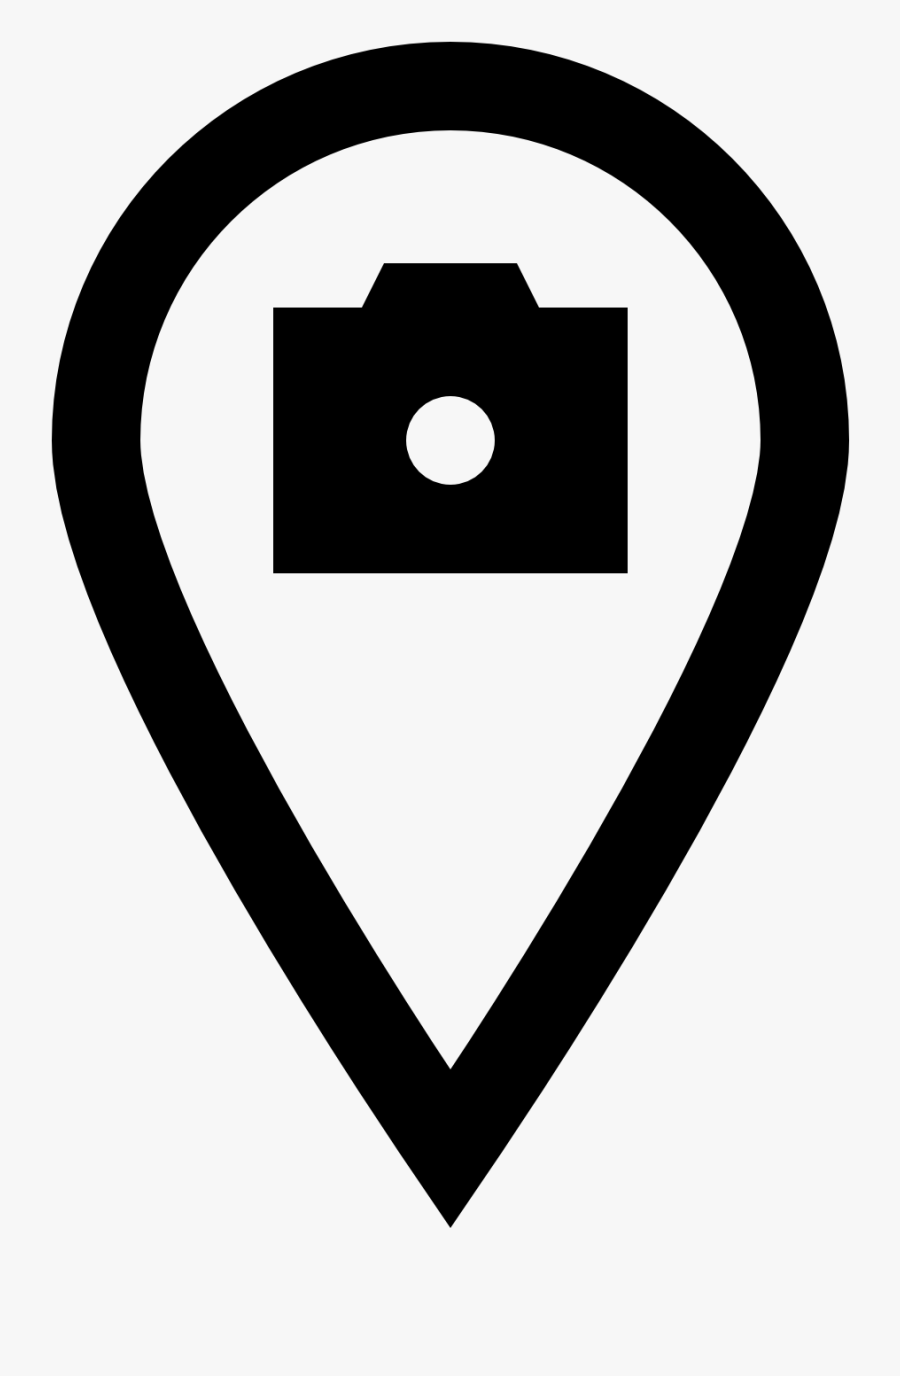 Of View Png Transparent - View Point Icon Png, Transparent Clipart